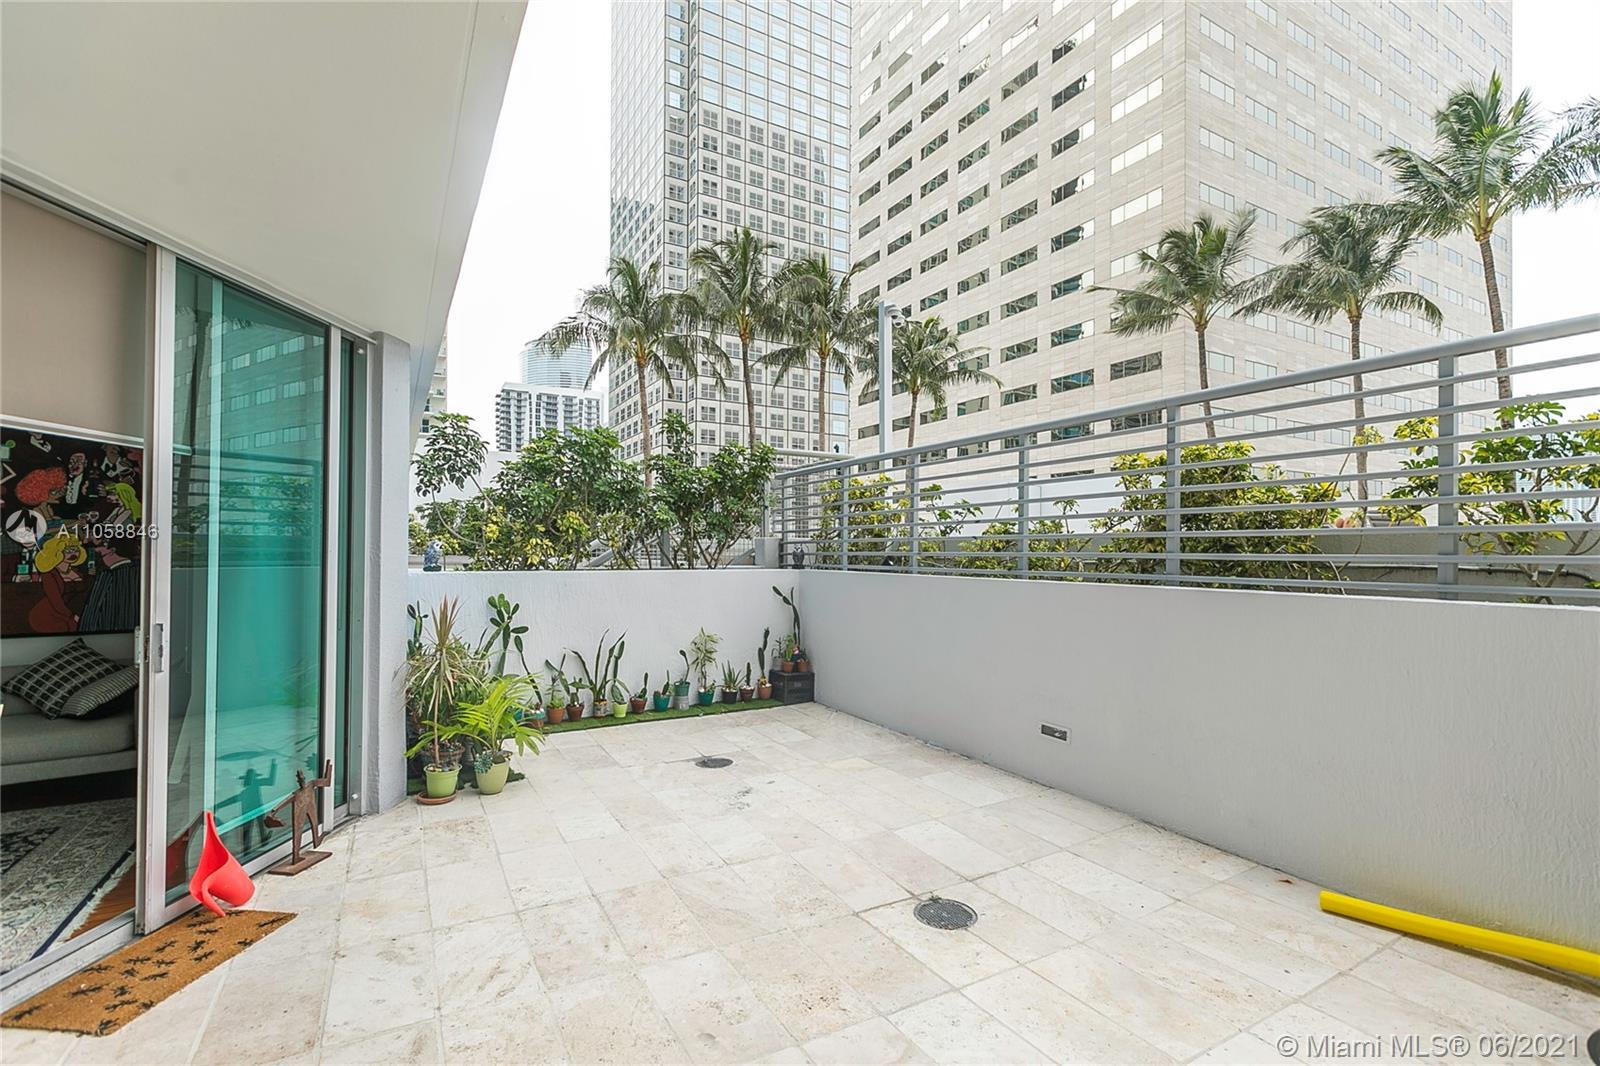 PRICE TO SALE. LOWEST PRICE IN THE BUILDING. UNIT FEATURES WOOD FLOORS, SPACIOUS ONE BEDROOM CONDO W